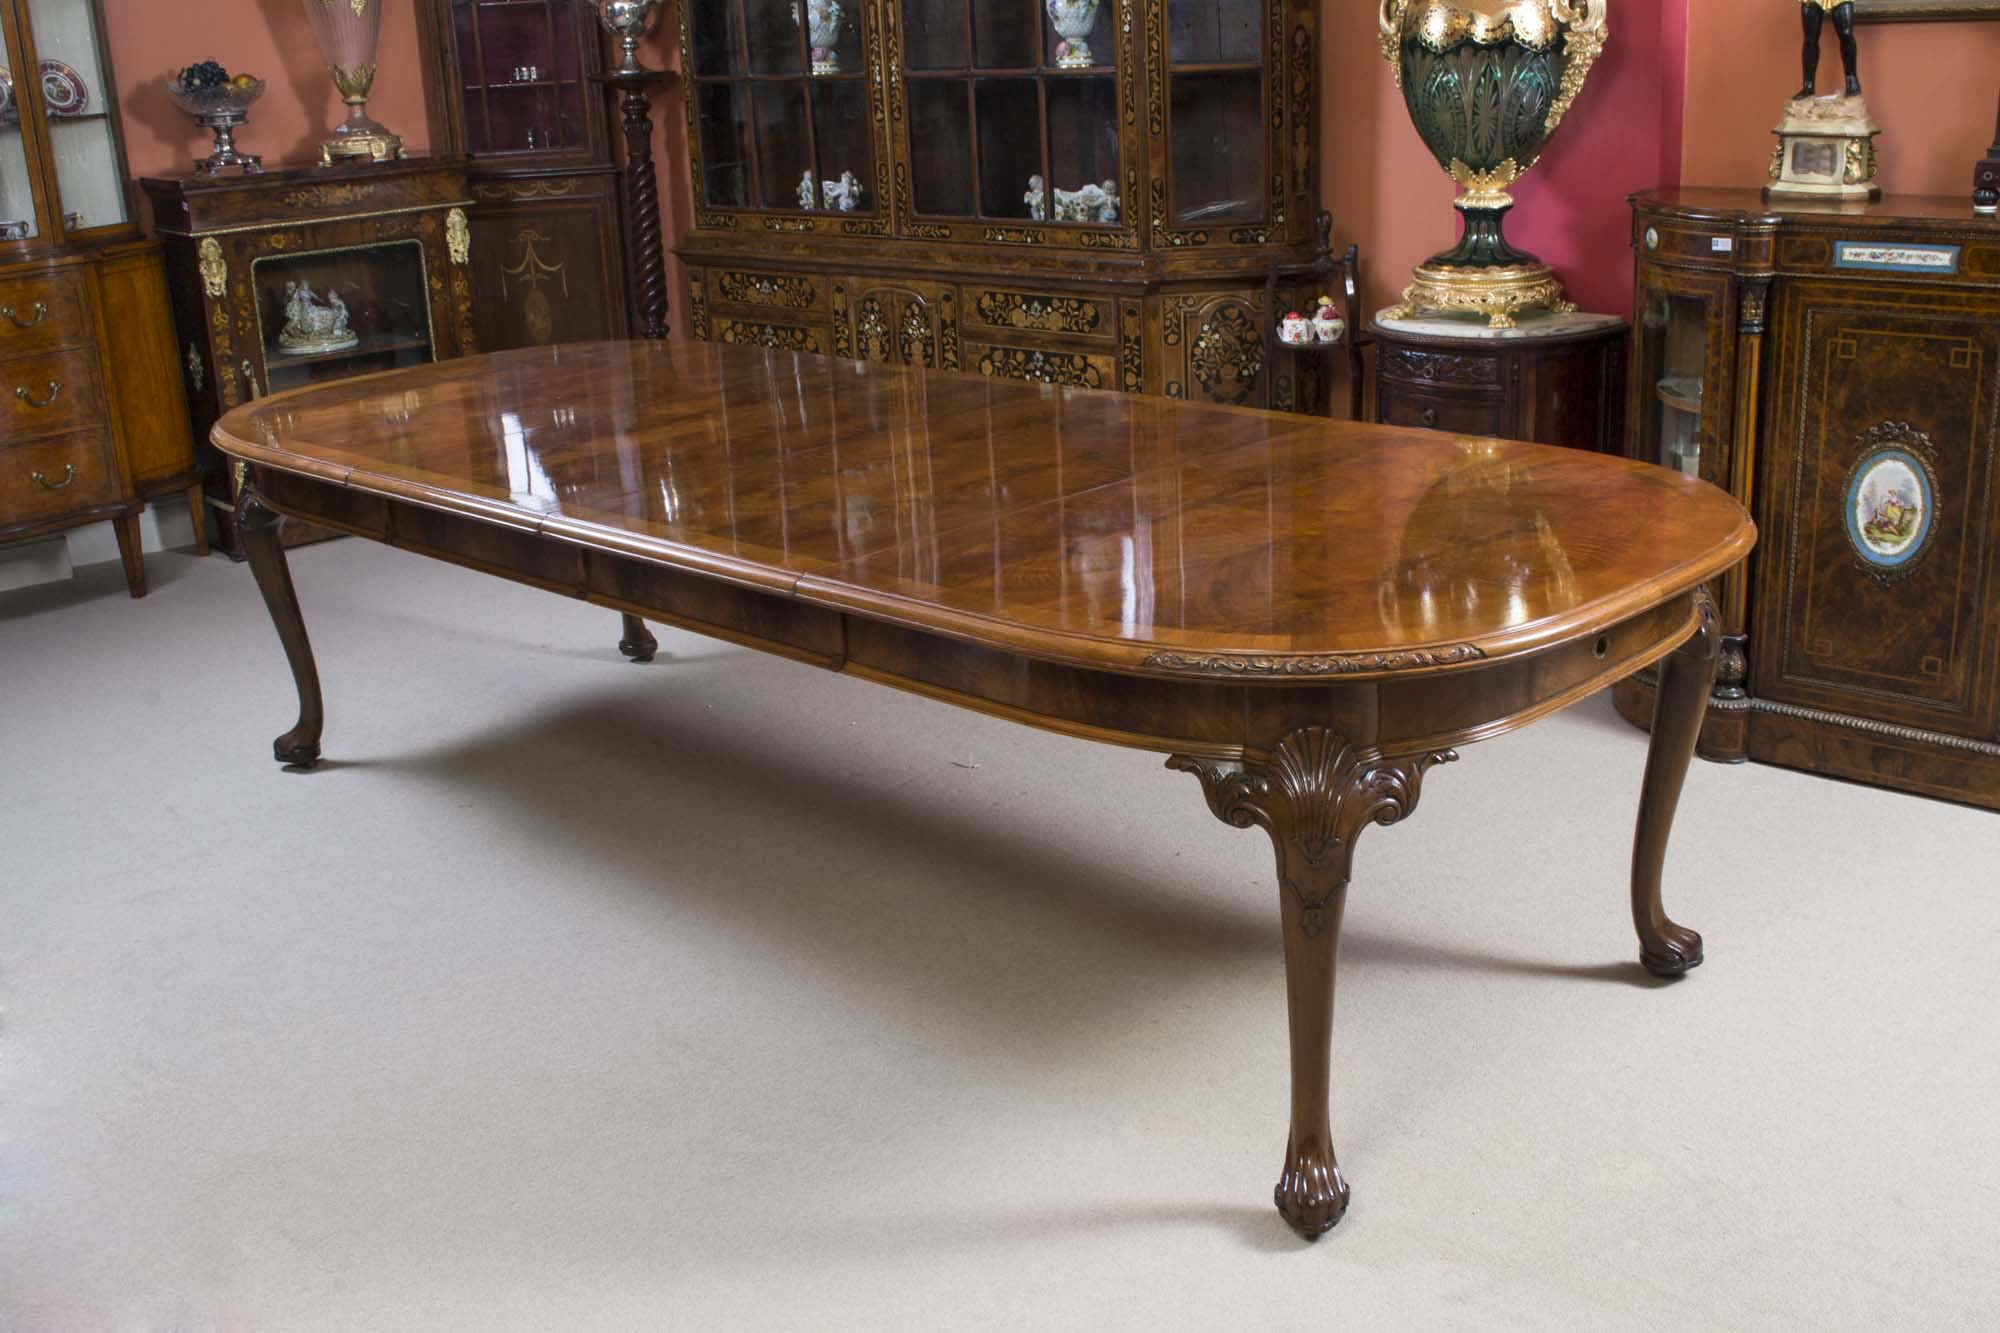 antique burr walnut queen anne styl dining table c1920